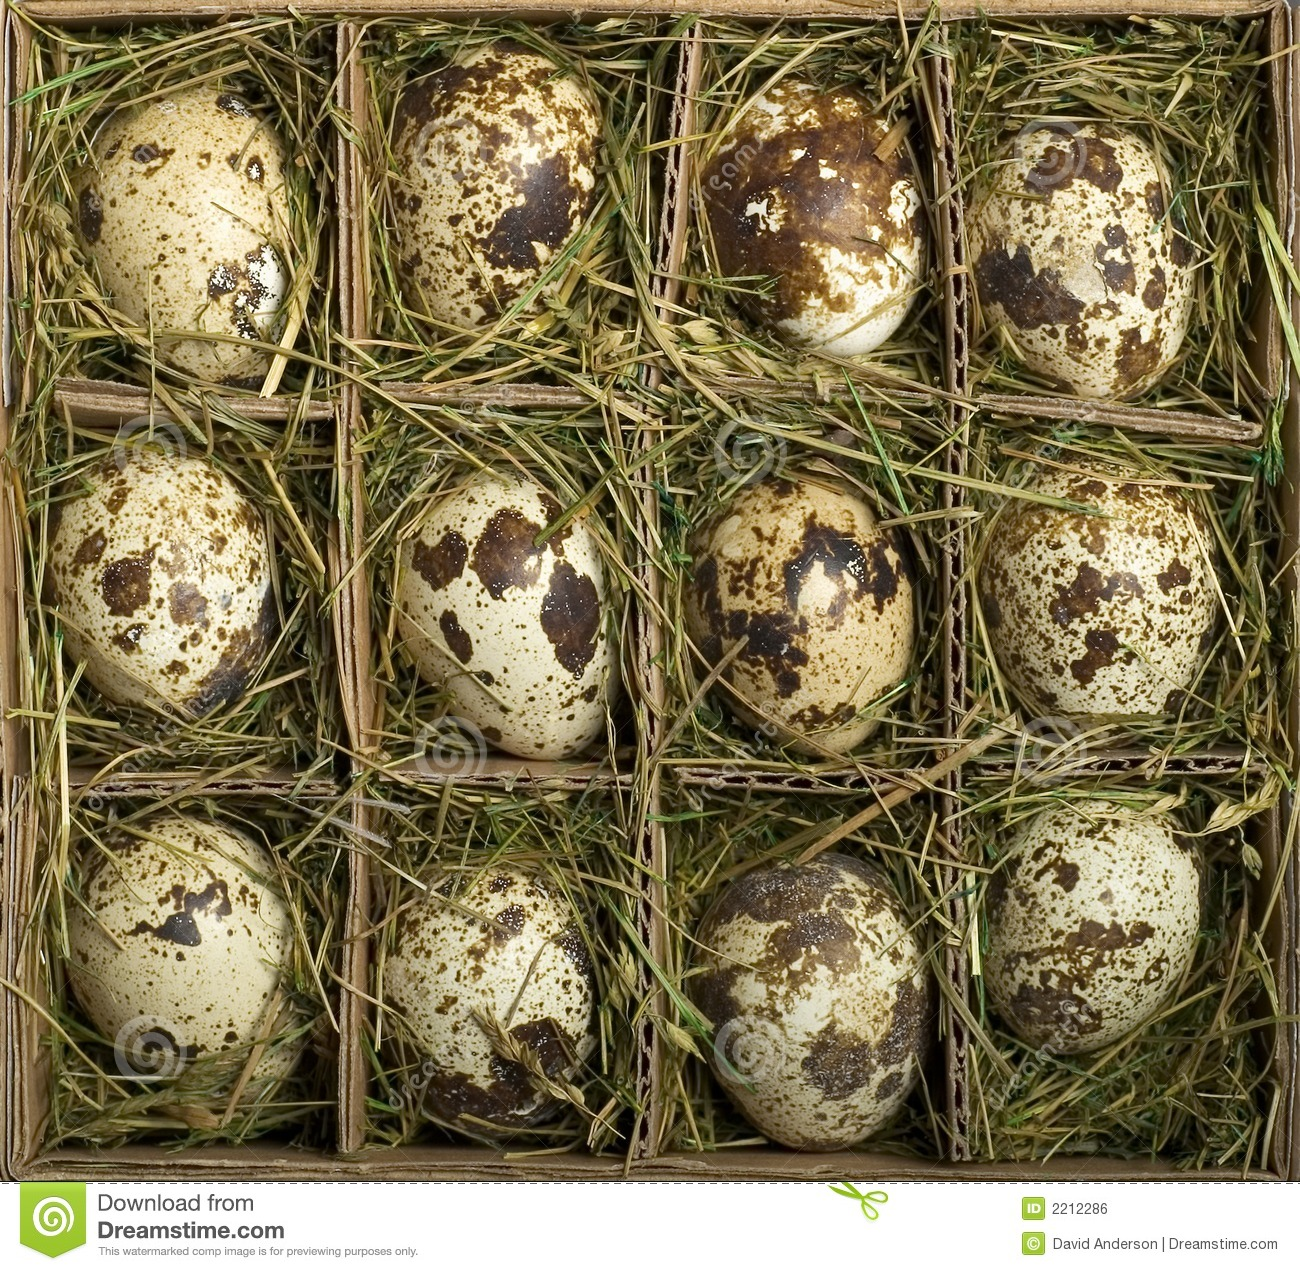 how to sell quail eggs